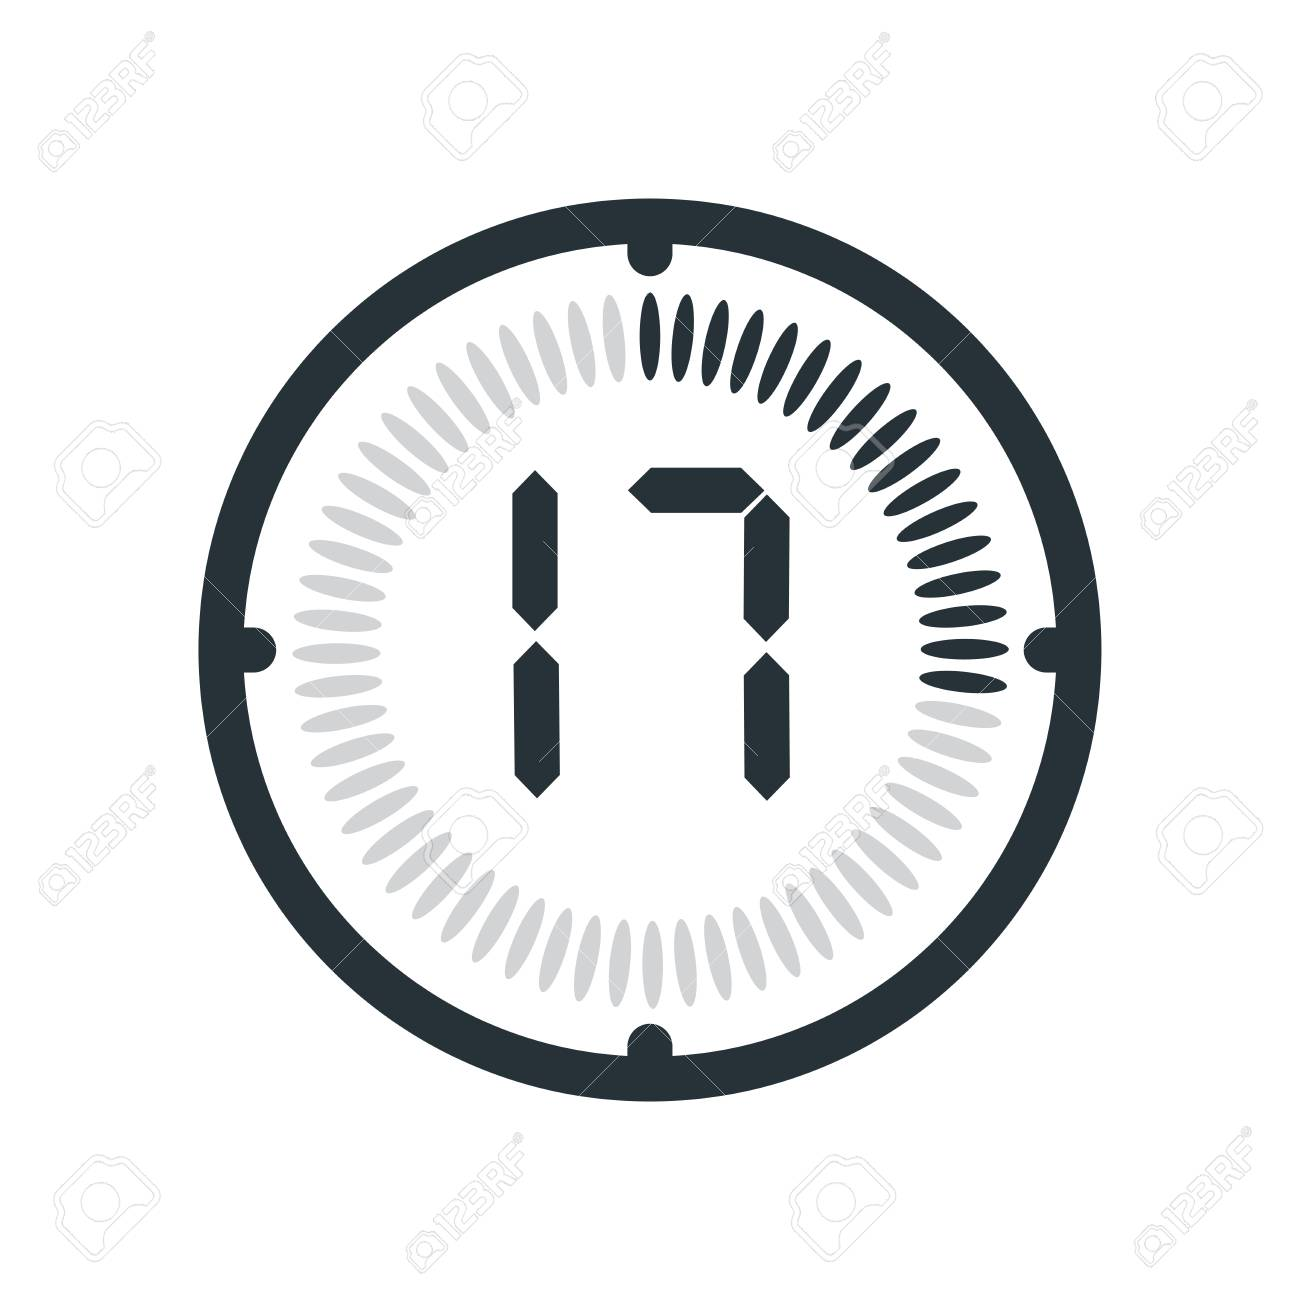 The 17 minutes icon isolated on white background, clock and watch,